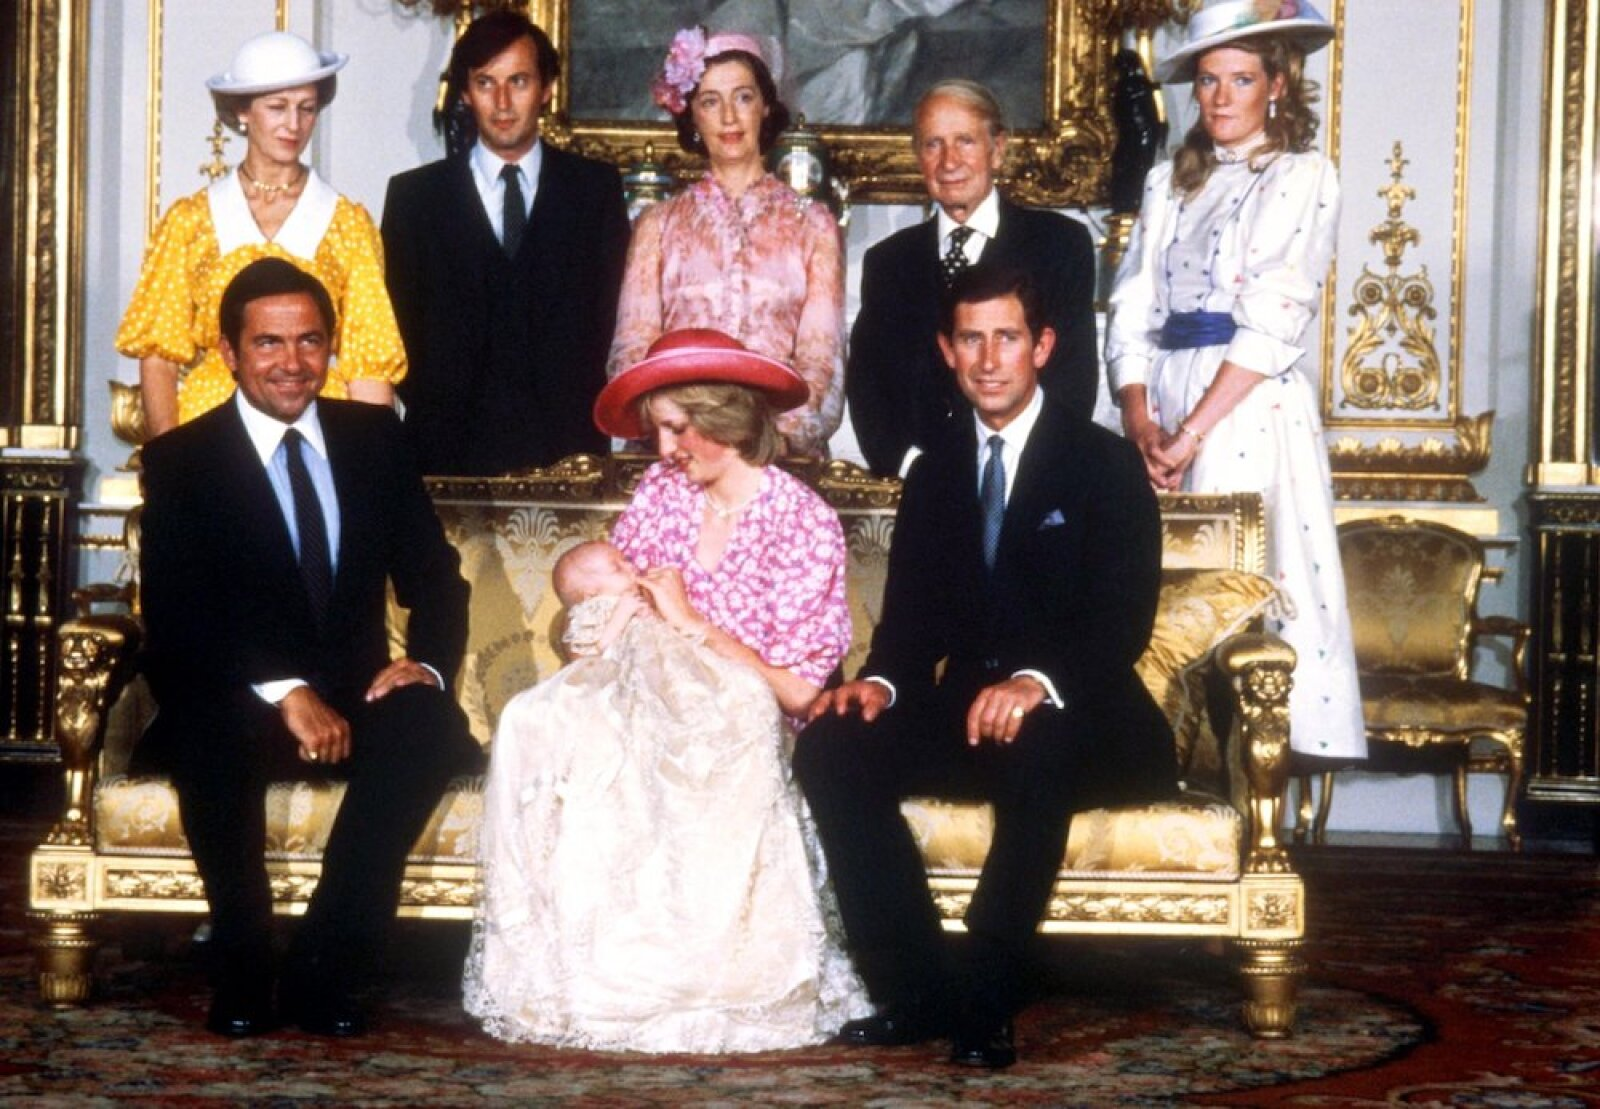 OFFICIAL CHRISTENING PICTURE OF PRINCE WILLIAM - 1982